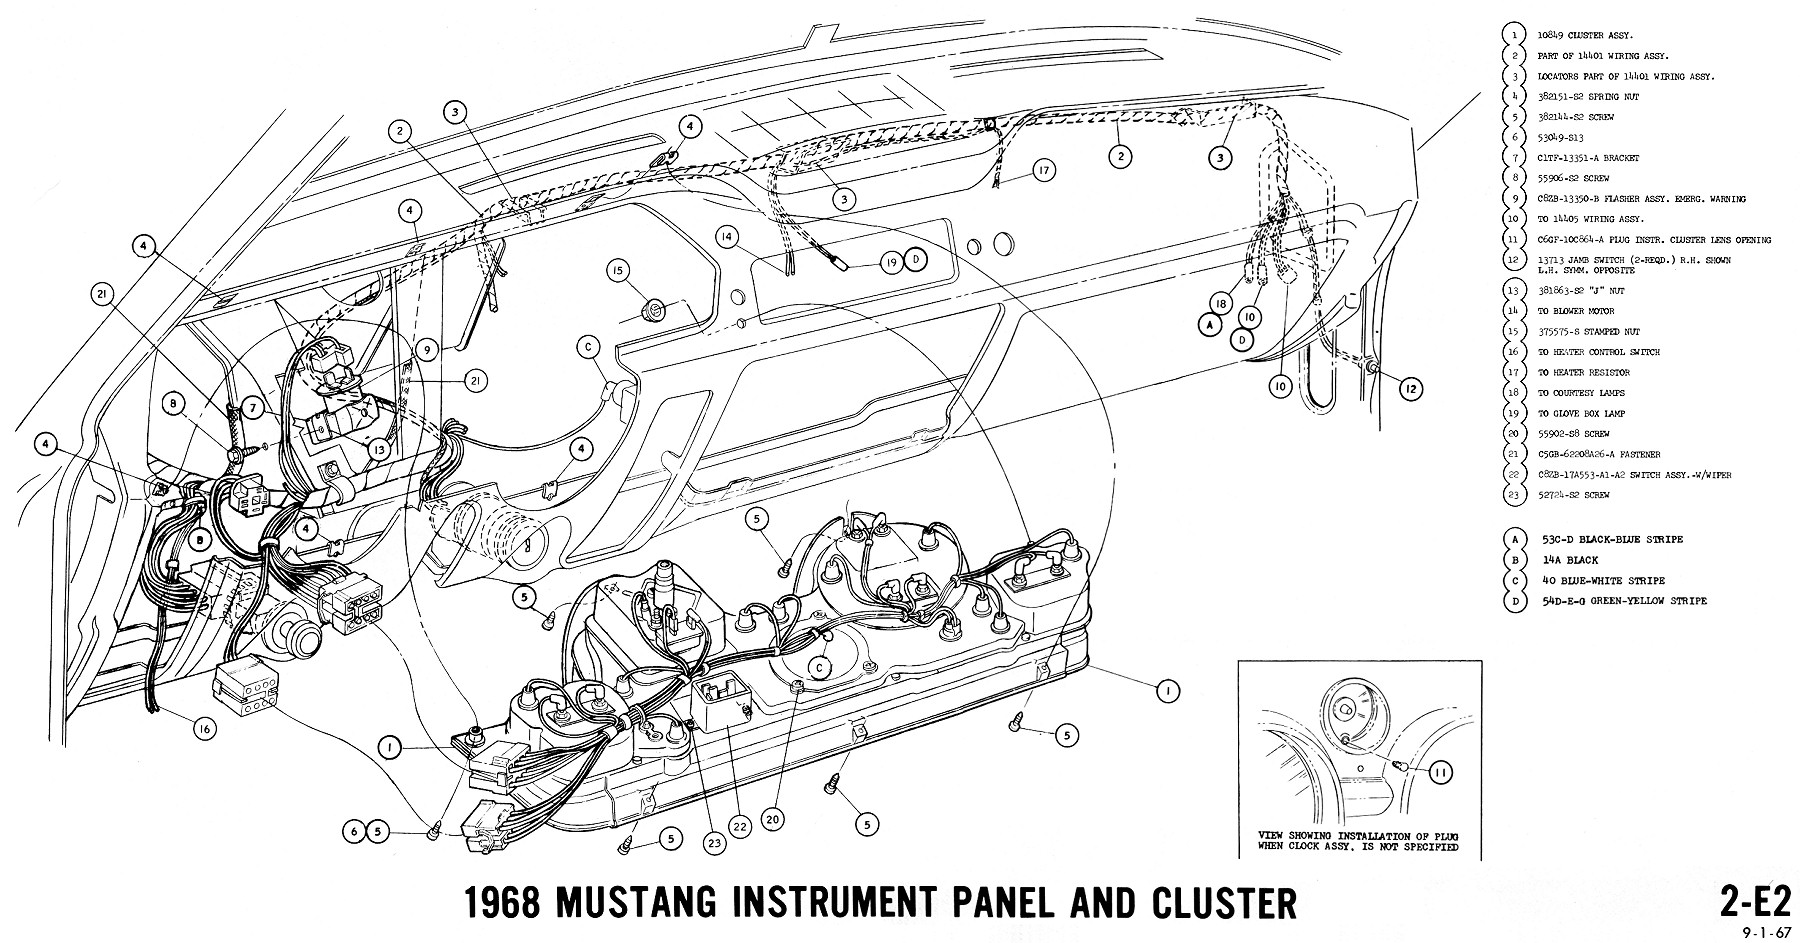 1968 Mustang Wiring Diagrams And Vacuum Schematics Average Joe Mercury Cougar Ignition Switch Diagram Instruments 2